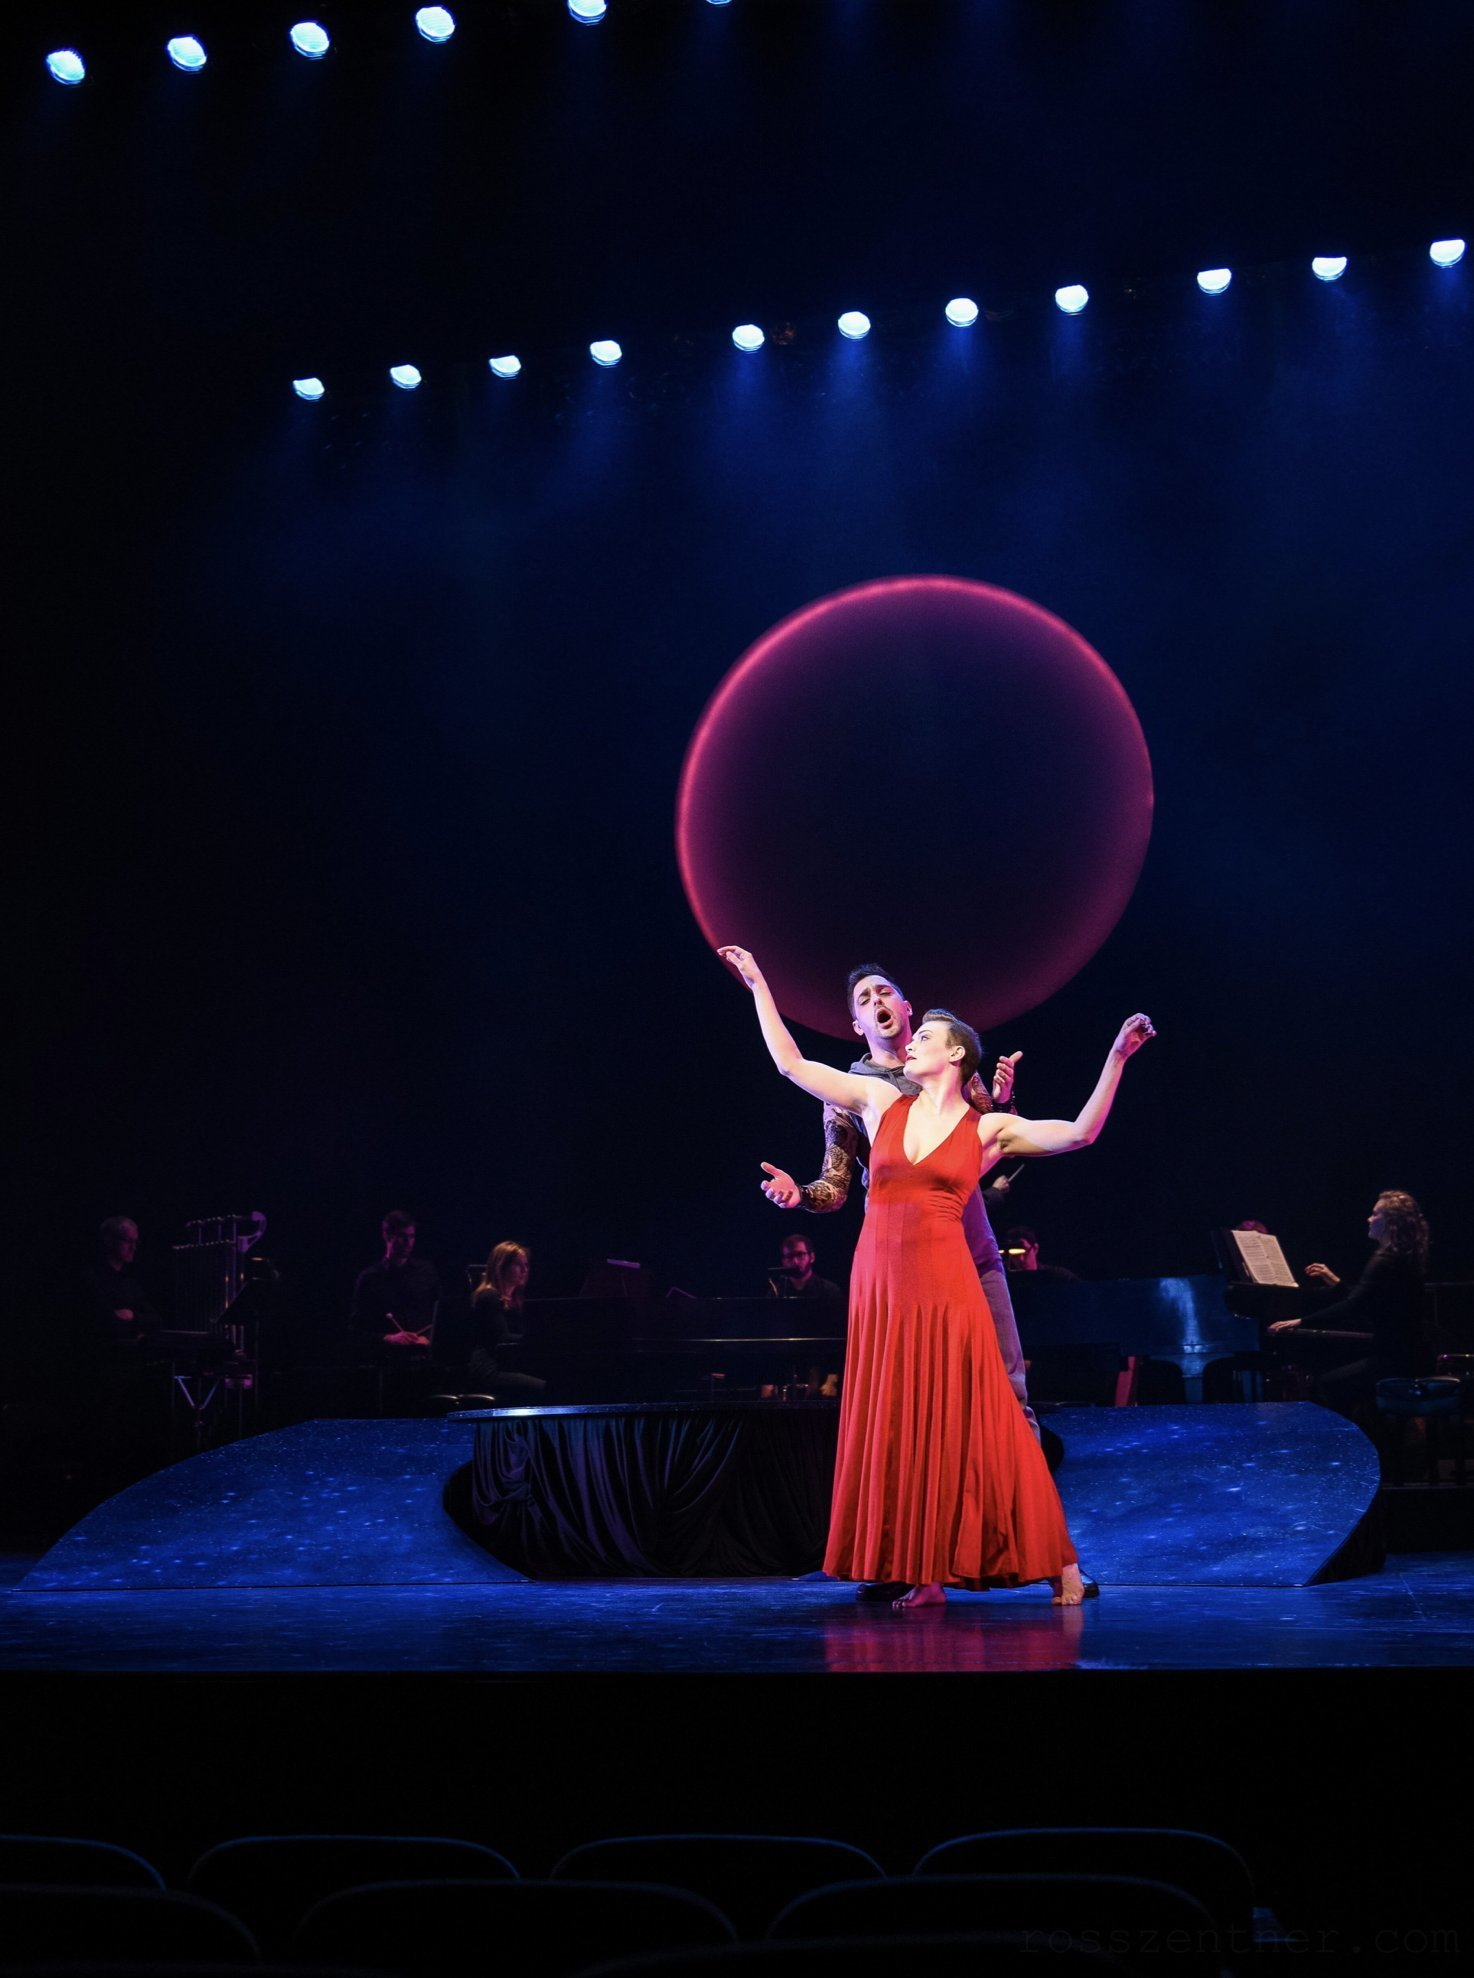 BWW Review: Exhilarating CARMINA BURANA Brings 'Total Theatre' to the Skylight